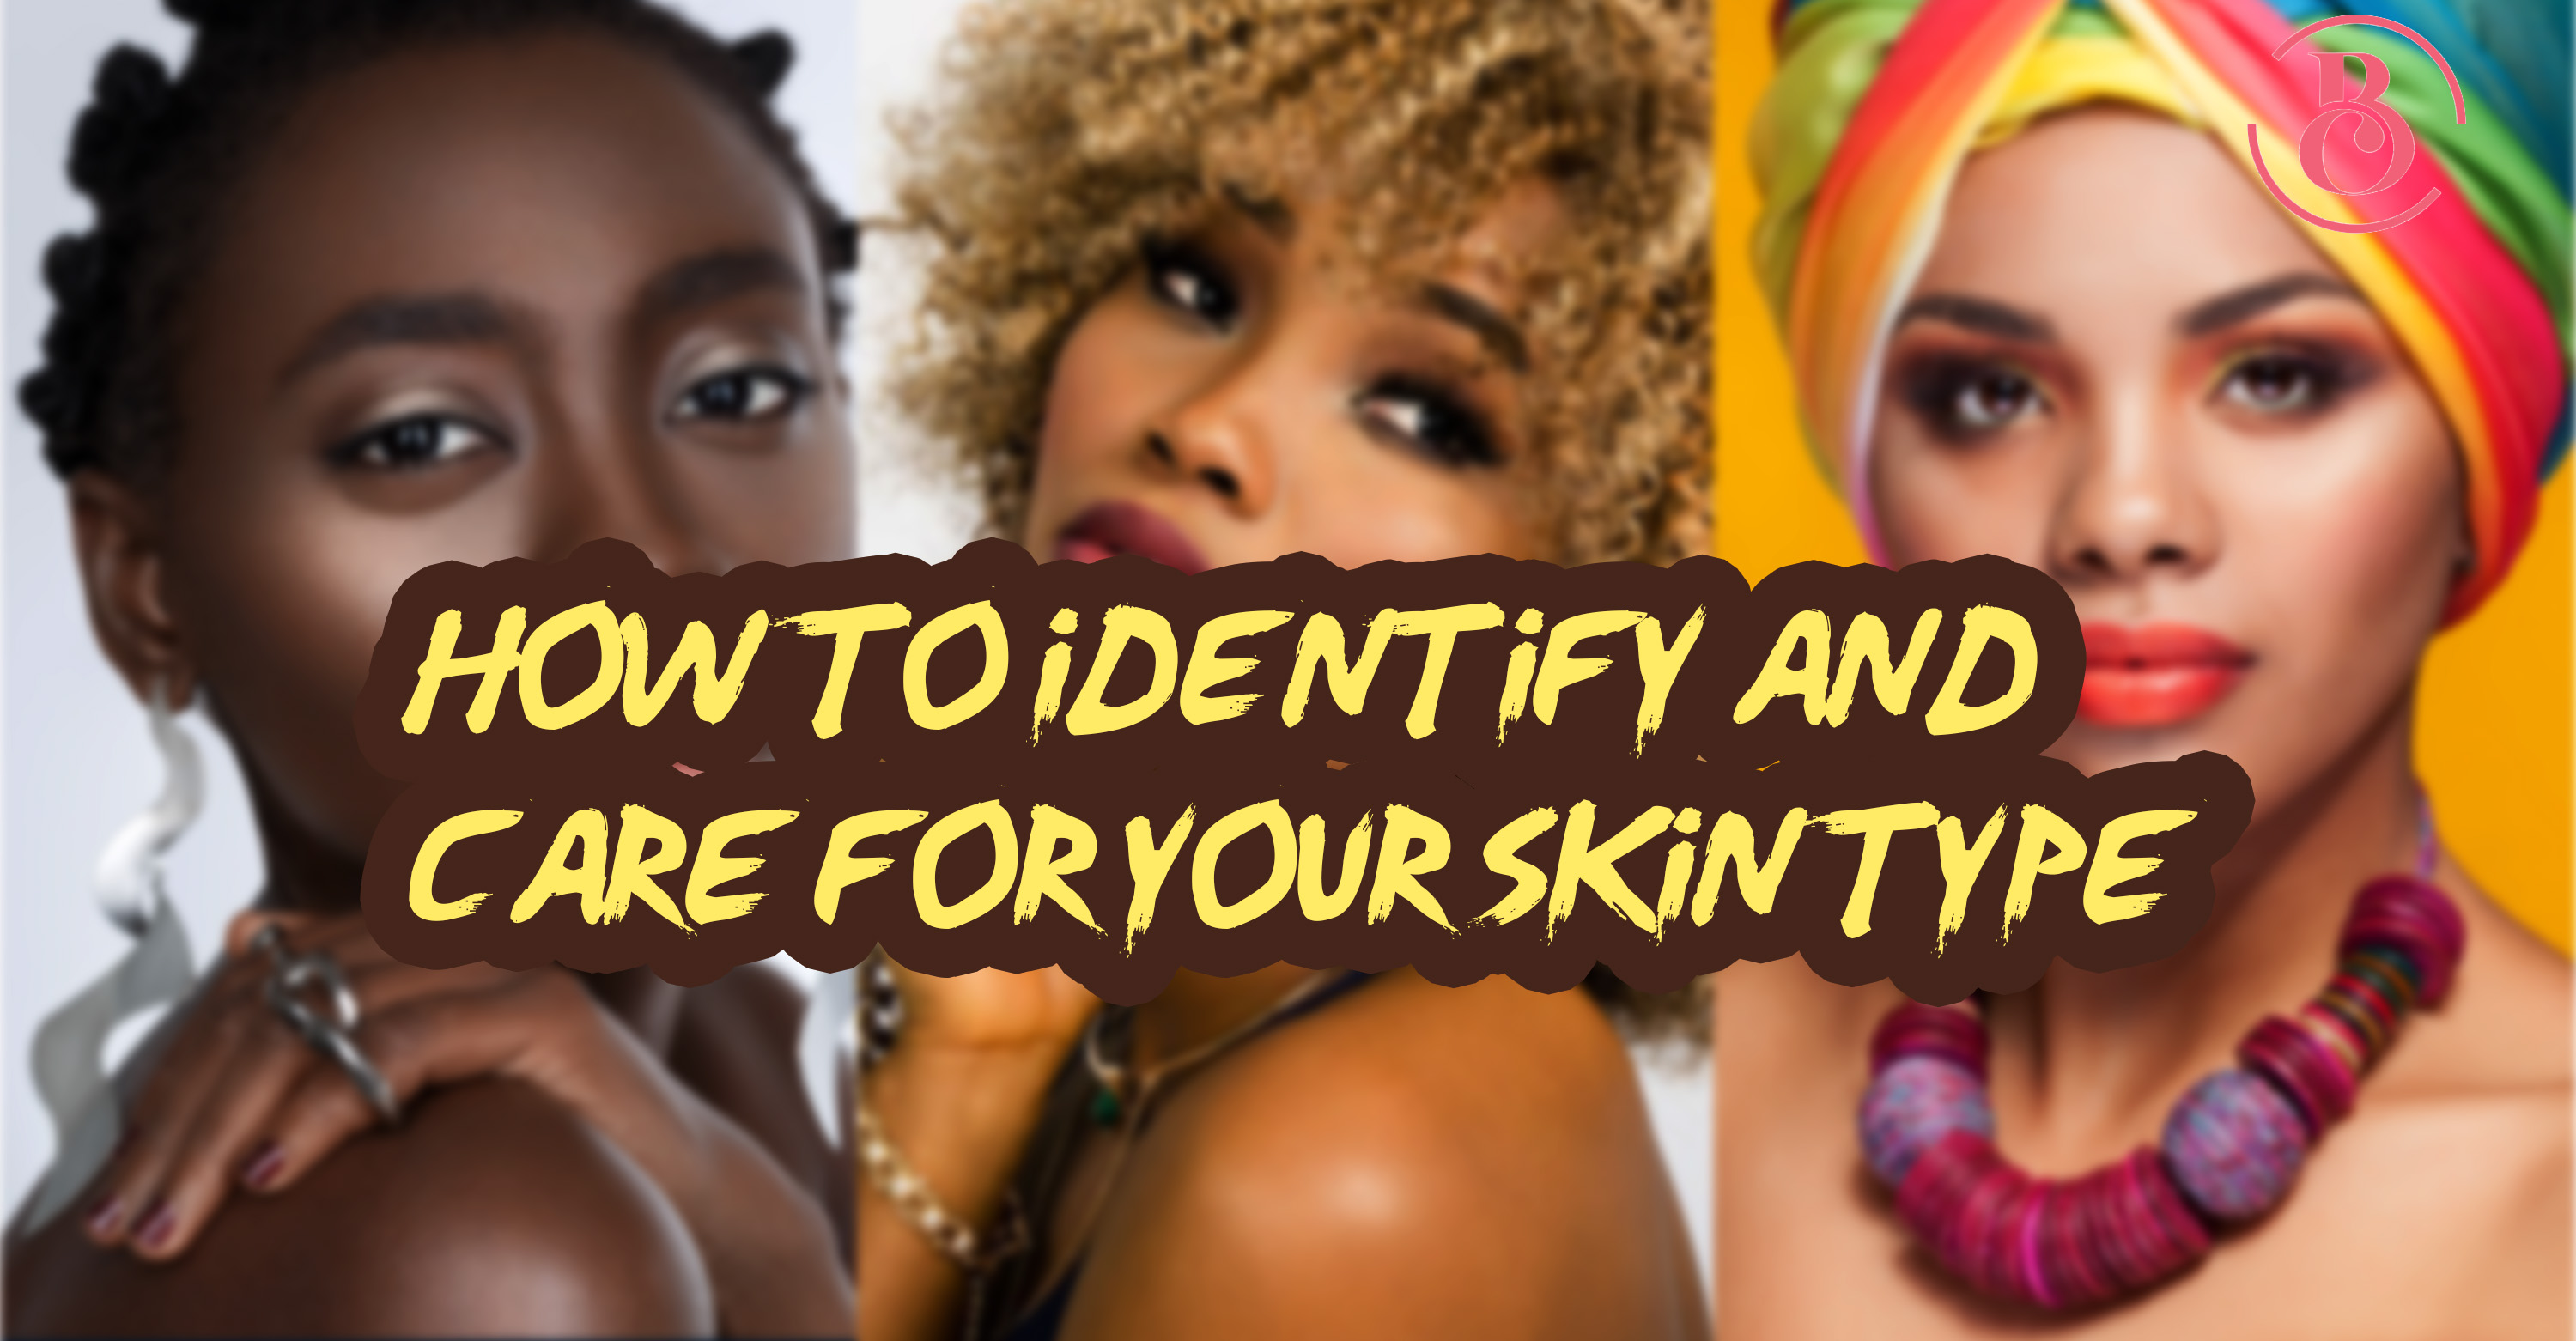 How to Identify and Care for Your Skin Type